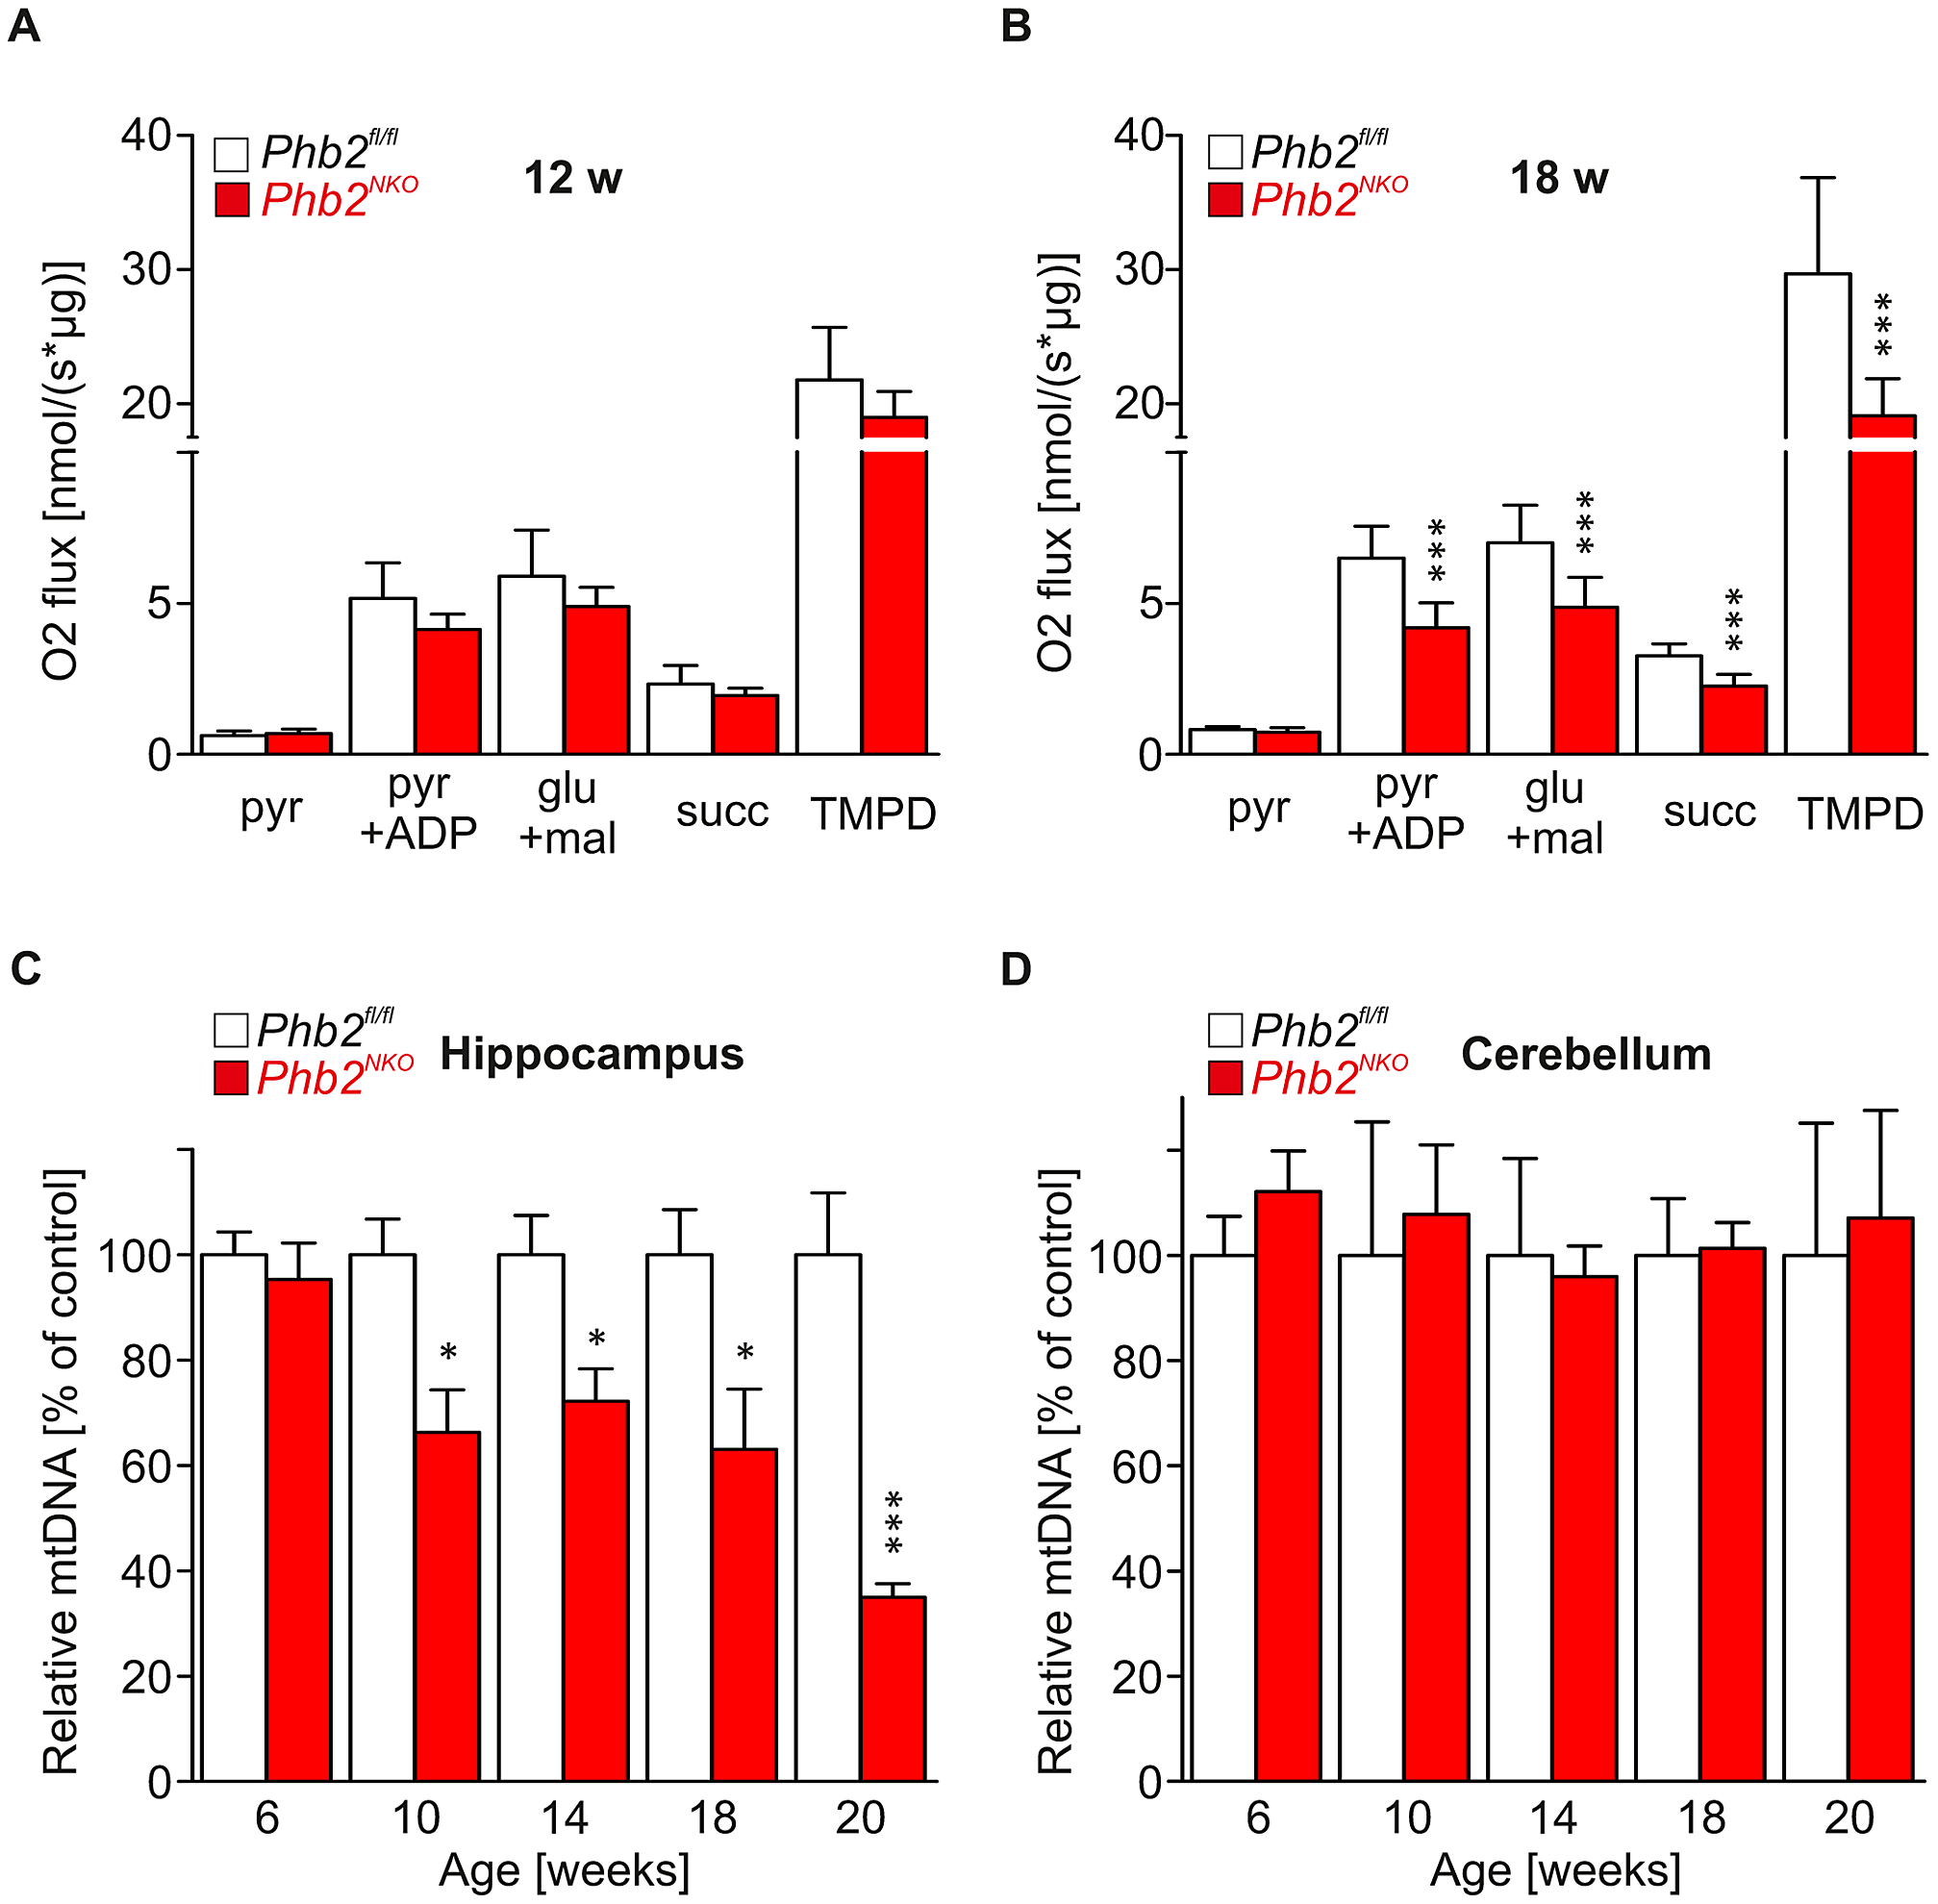 Late-onset mtDNA loss and respiratory dysfunction in <i>Phb2<sup>NKO</sup></i> mice.